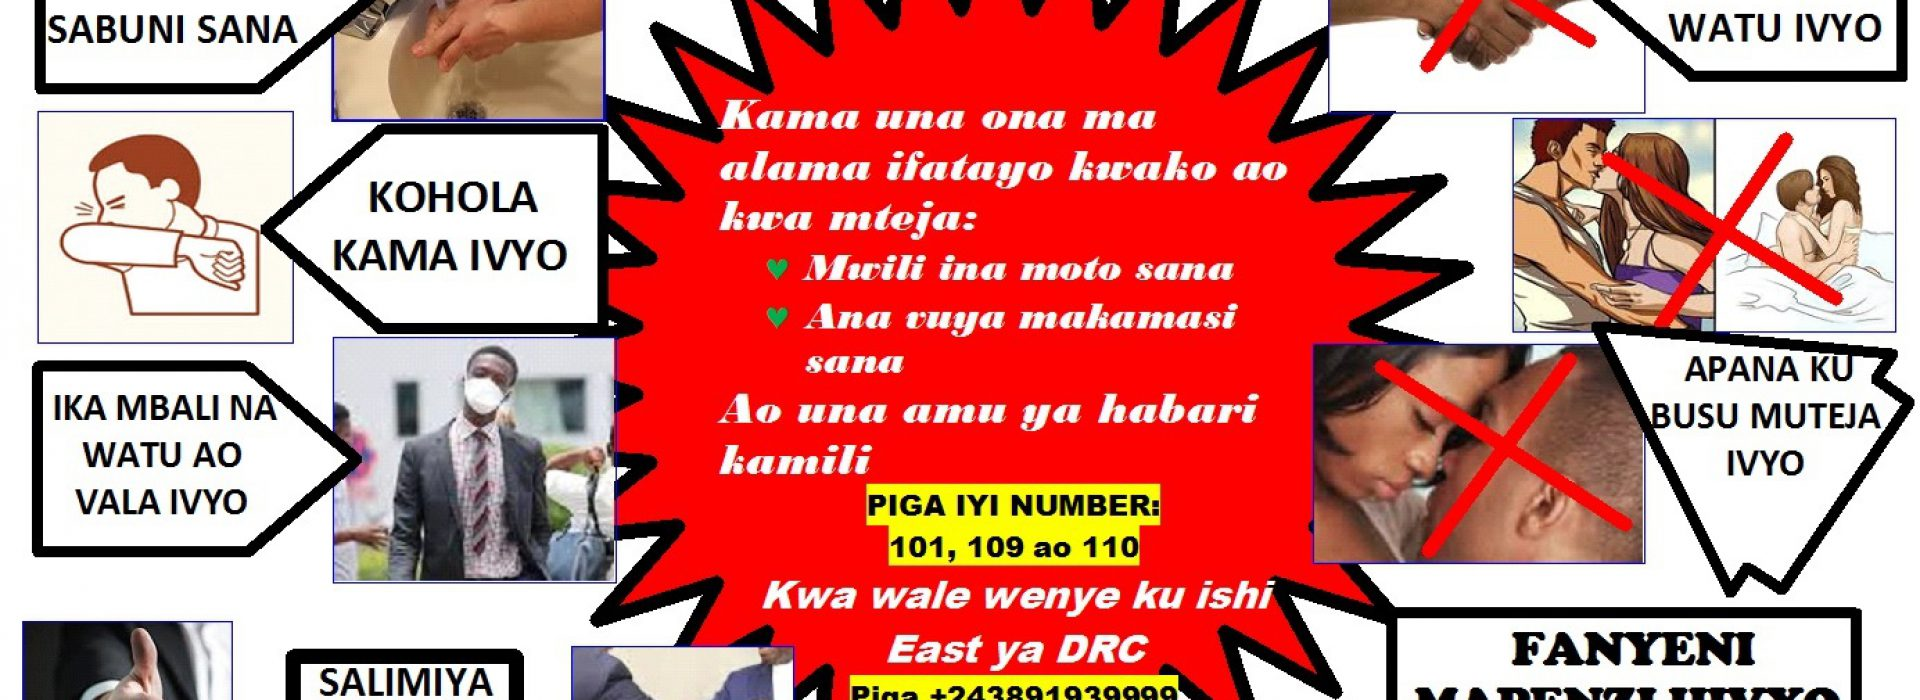 Shwahili version_Poster_Sensitization_SW_COVID-19_DRCMars2020